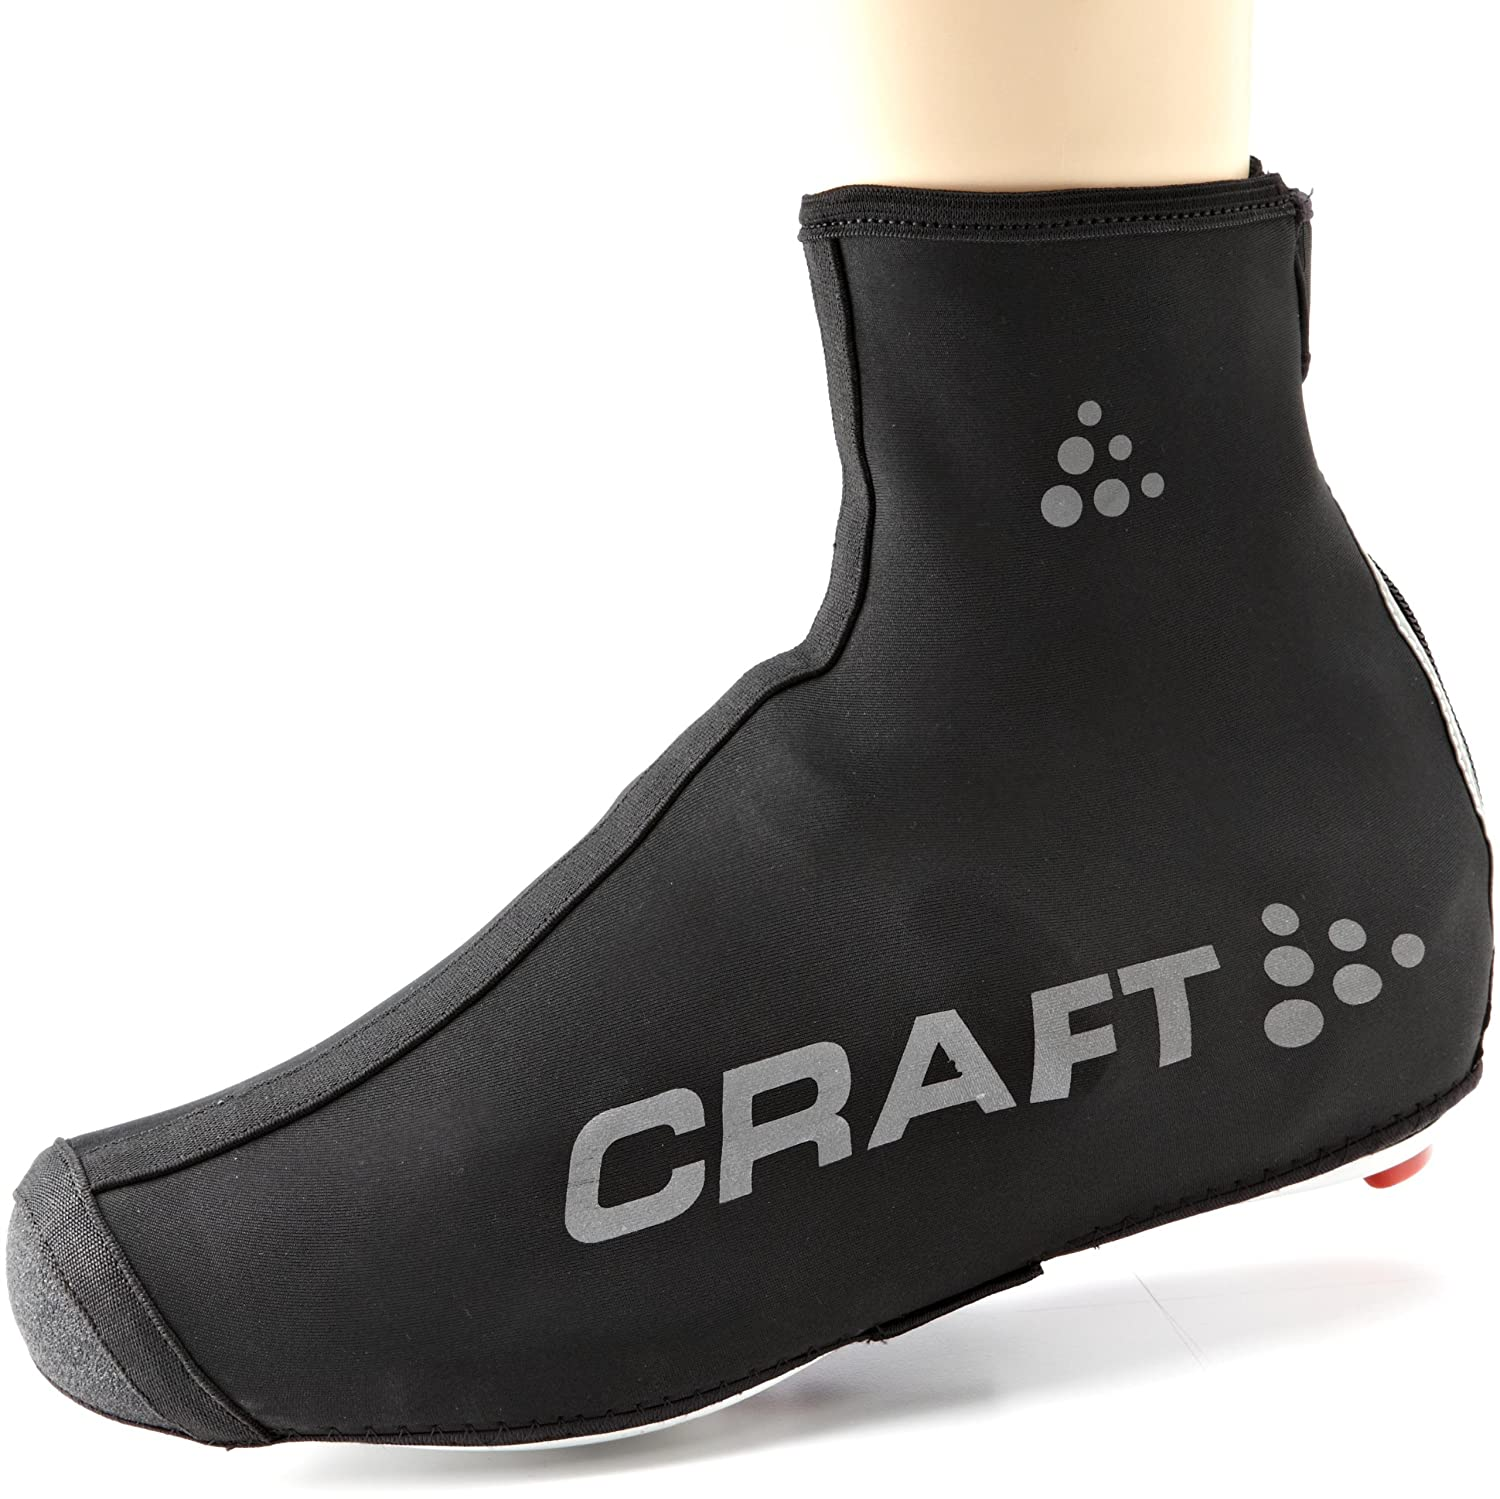 Craft Sportswear Unisex Neoprene Elastic Bike Cycling Introduction To 7400 Series Digital Logic Devices Fizix Shoe Cover Bootie Protective Riding Cooling Sports Outdoors